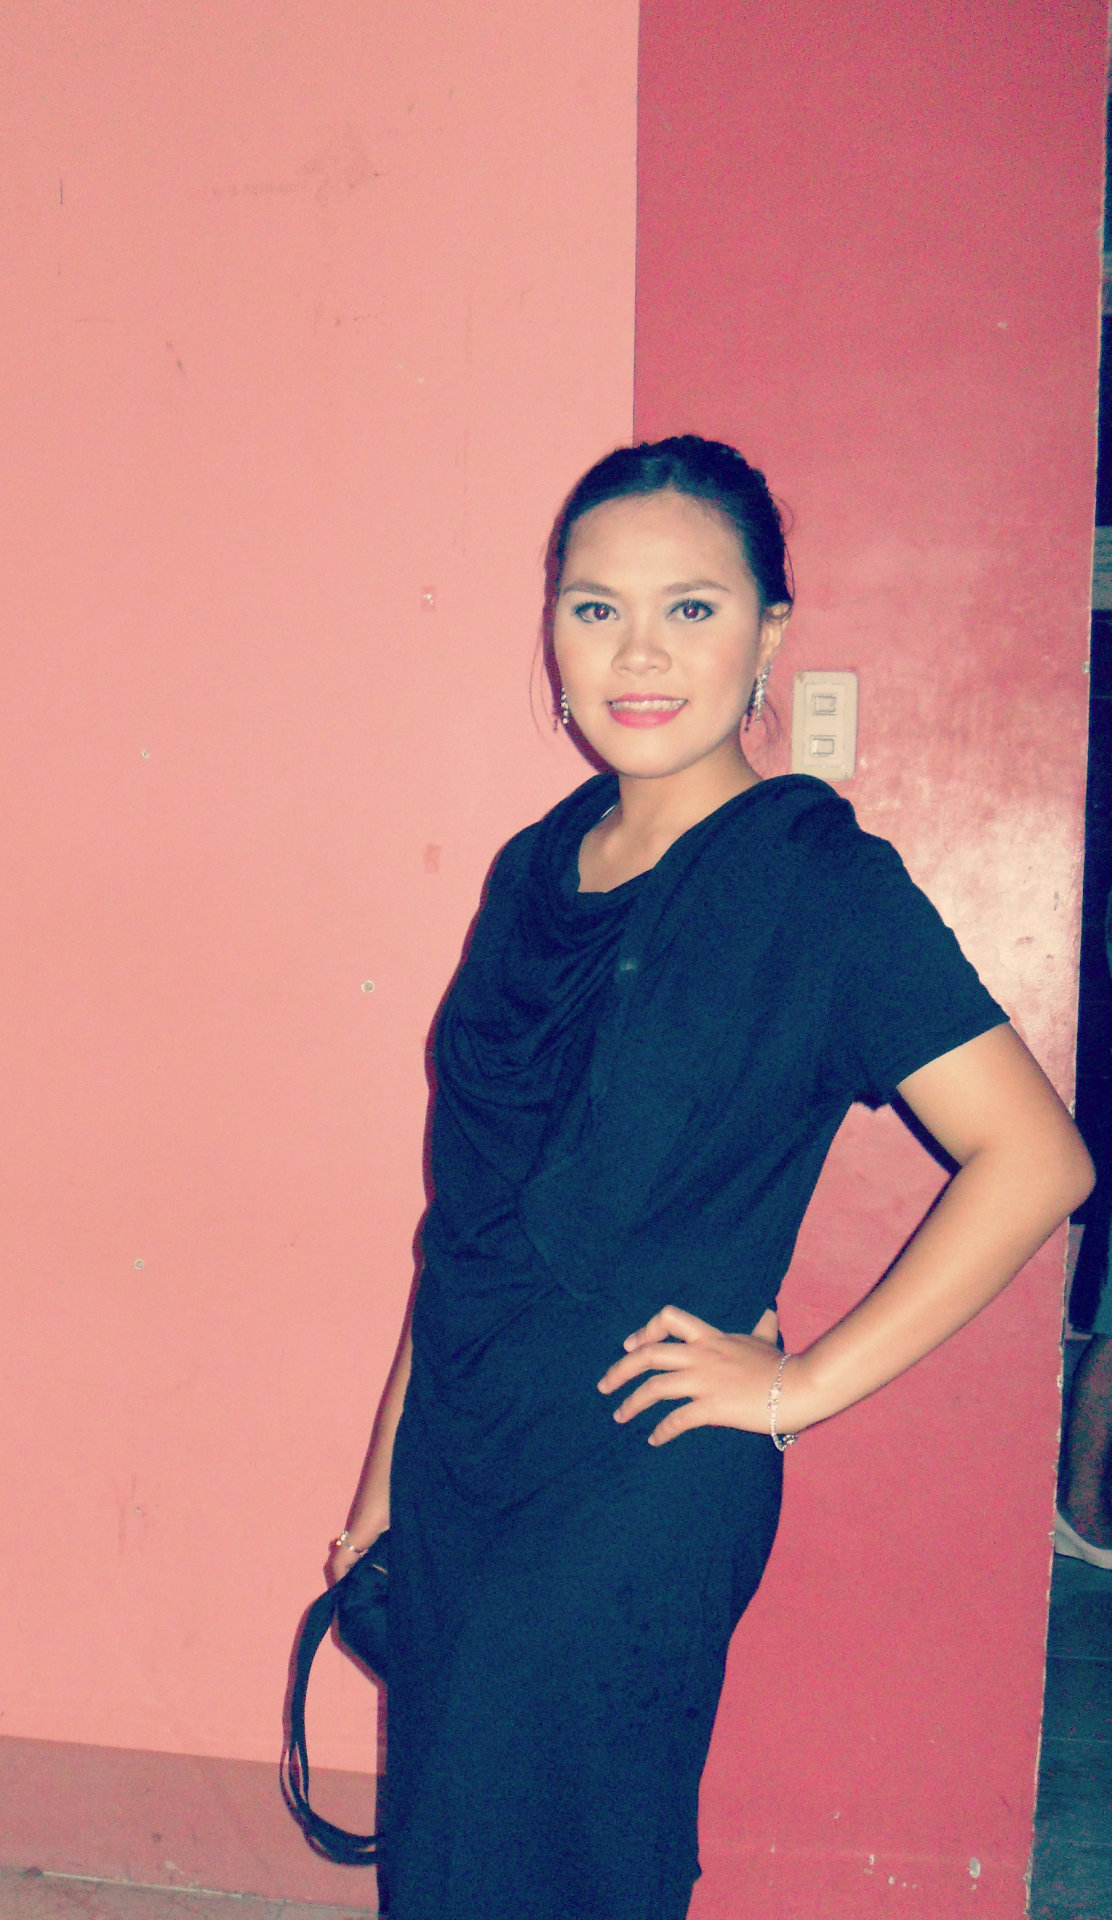 Awards night lng ang peg?? hahahaha  no, It was our Etiquette last tues. heheheh it was fun & enjoyed. :)))